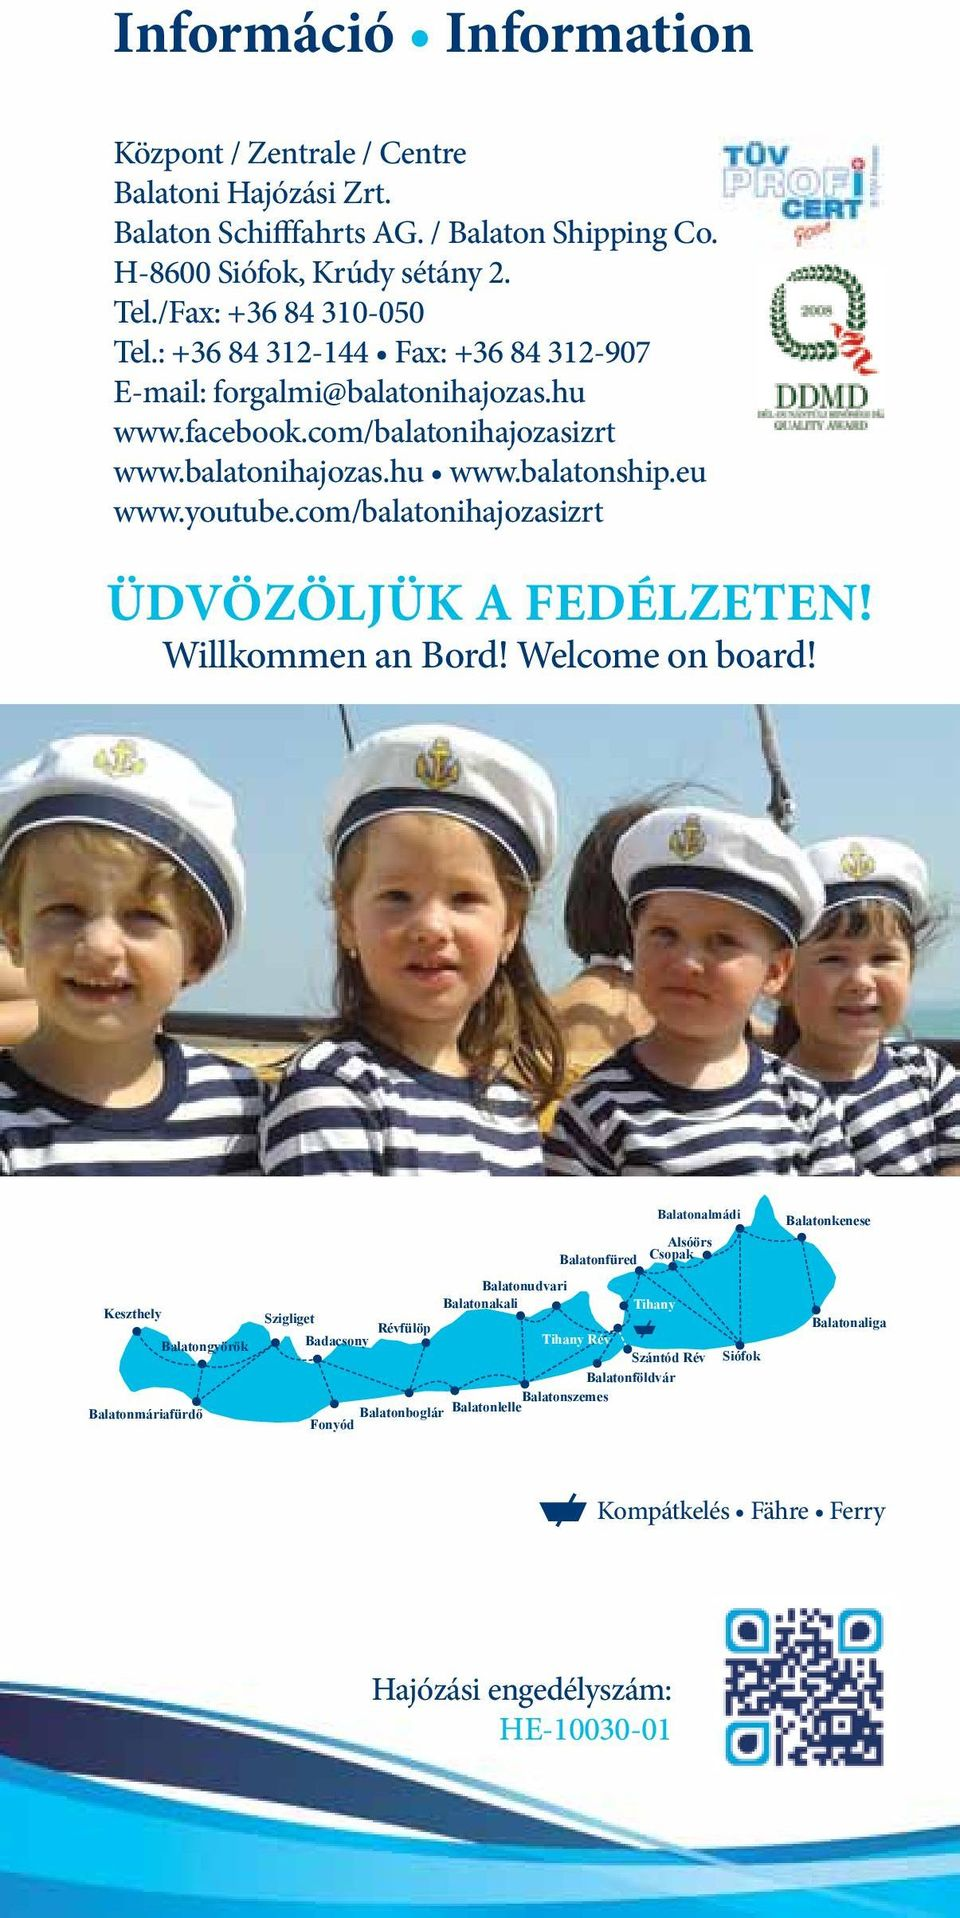 com/balatonihajozasizrt Üdvözöljük a fedélzeten! Willkommen an Bord! Welcome on board!